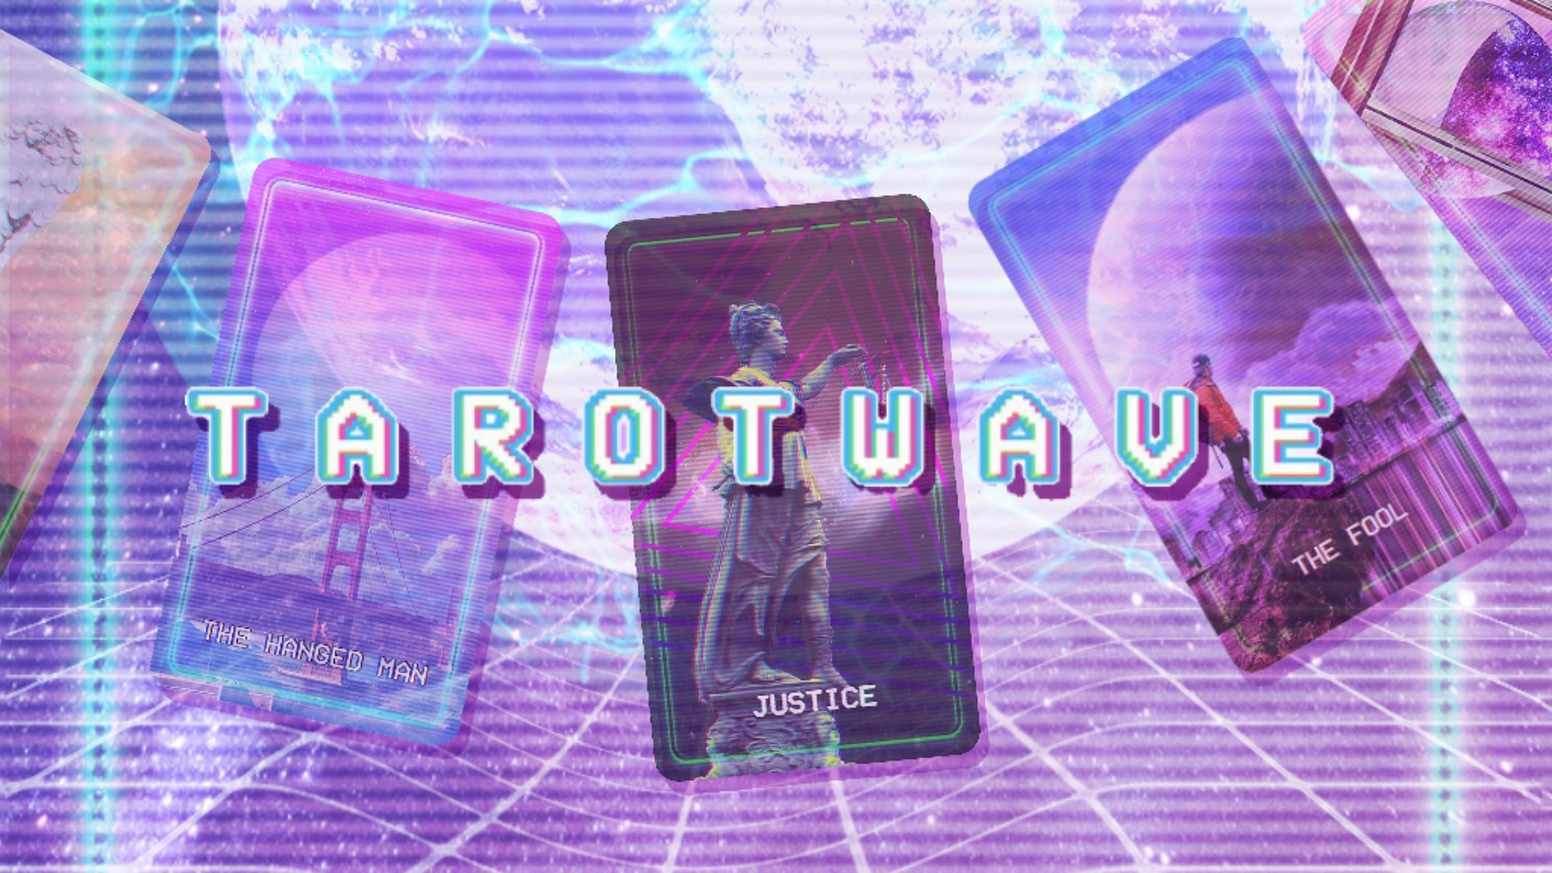 A unique tarot deck inspired by the aesthetics of vaporwave, space, glitch art, and beyond!